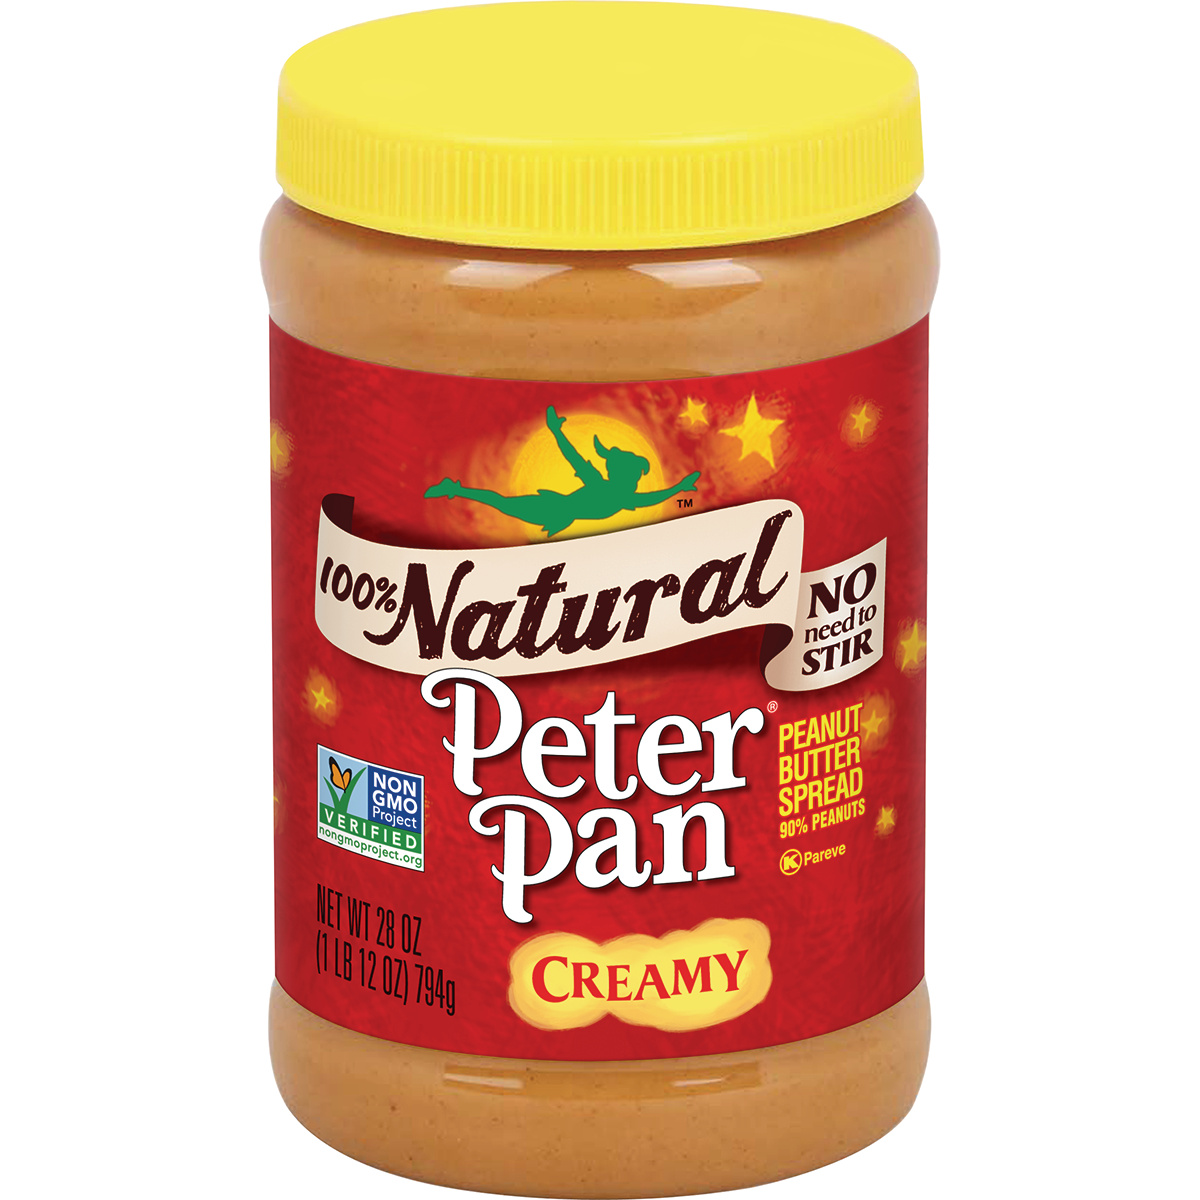 Peter Pan 100% Natural Creamy Peanut Butter Spread, 28 Ounce